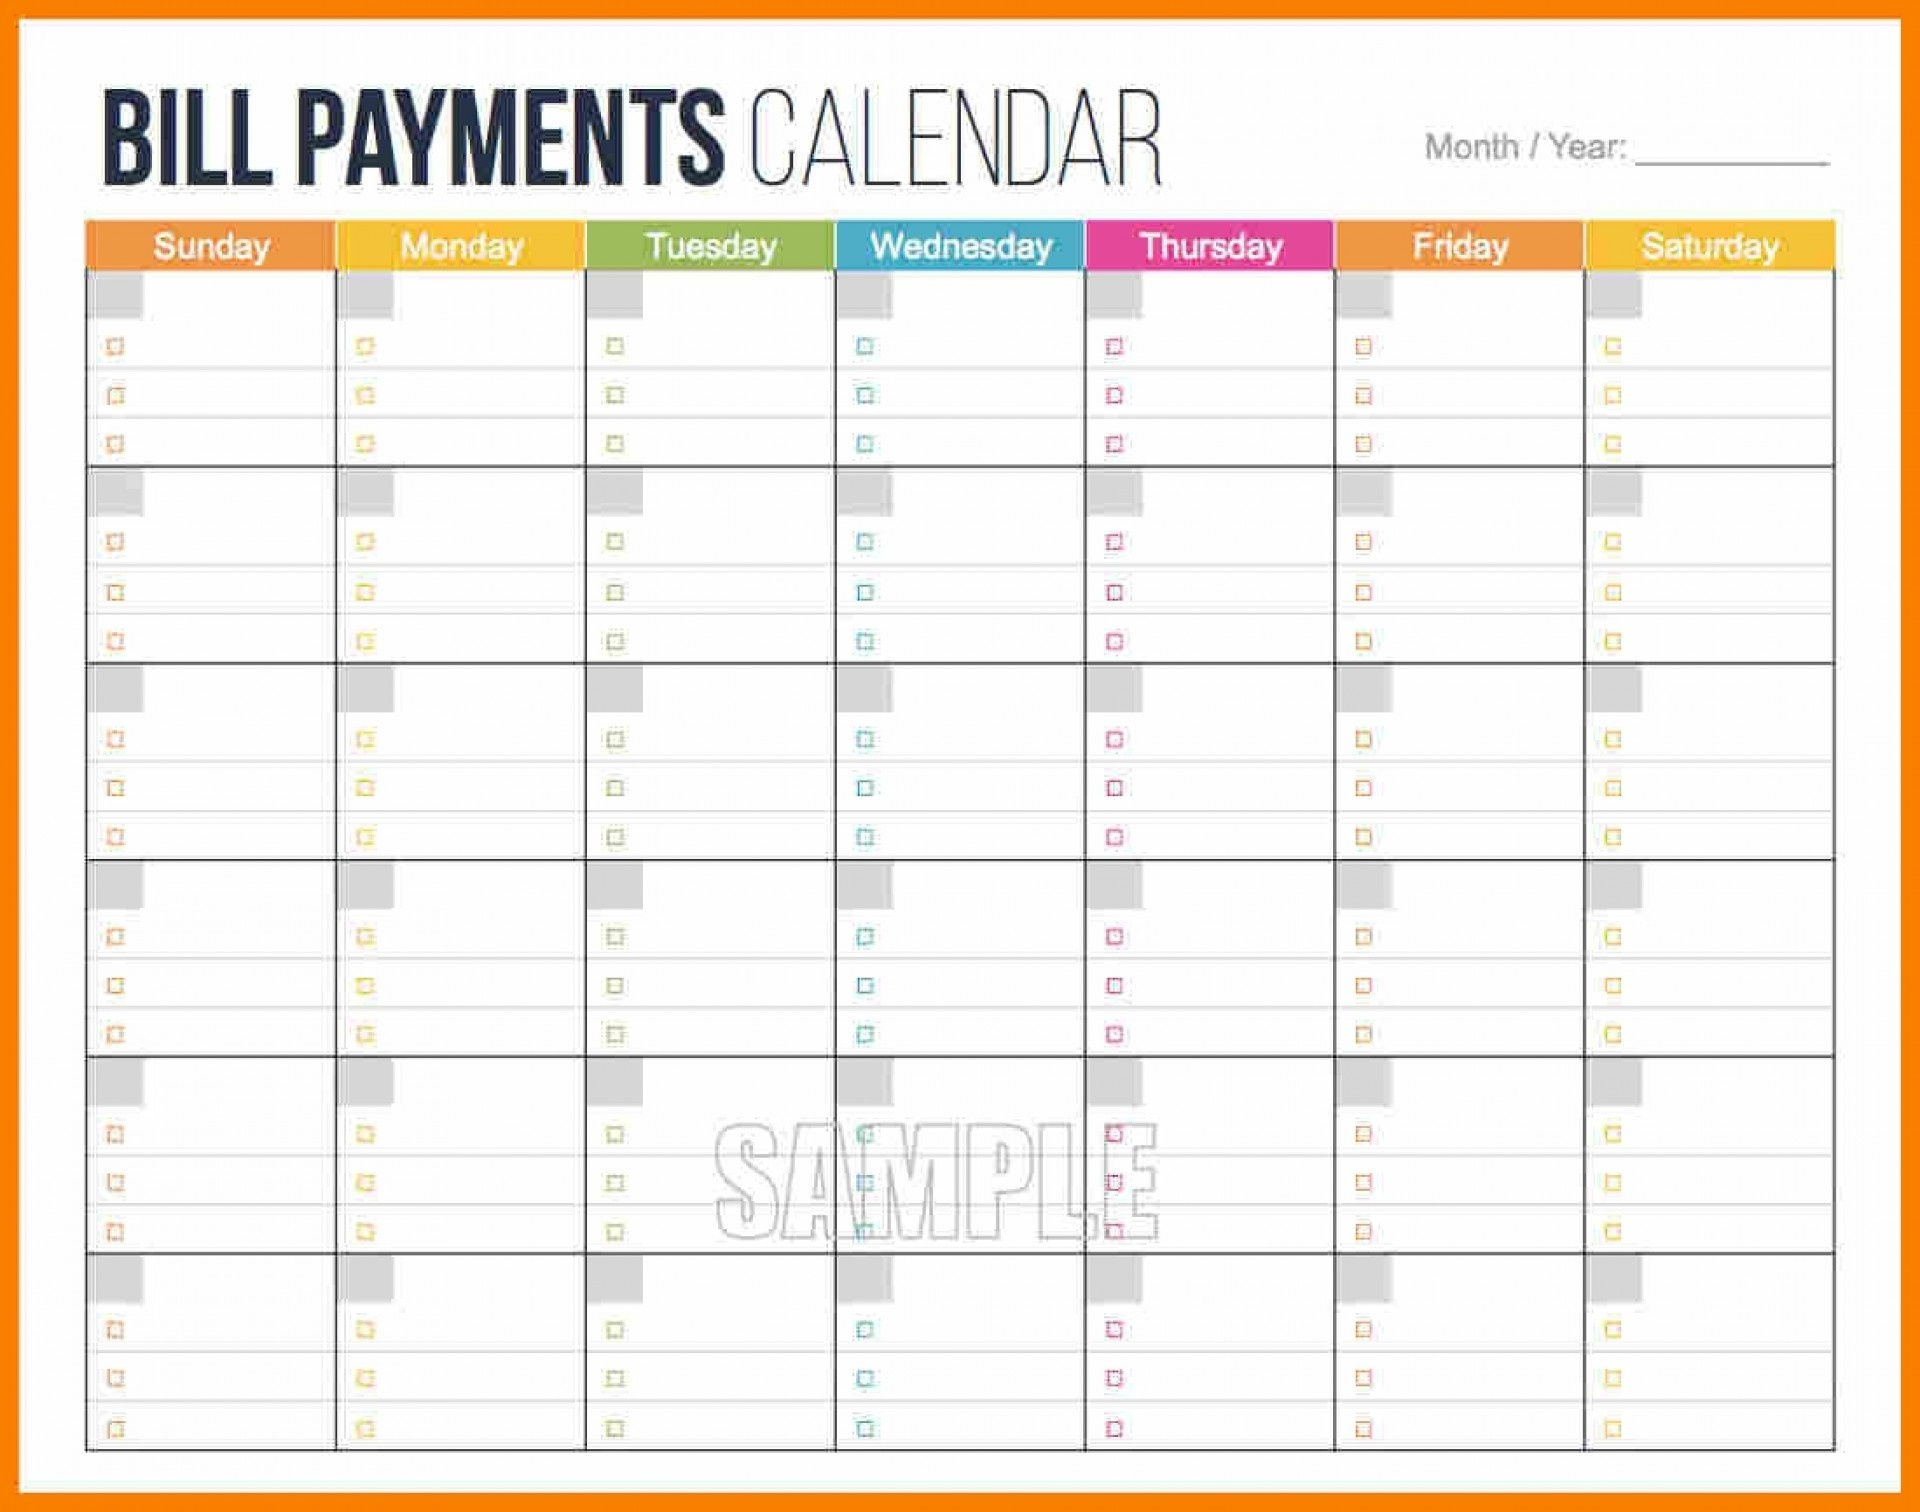 006 Bill Payment Pay Schedule Template Unusual Ideas Spreadsheet - Free Printable Bill Payment Schedule